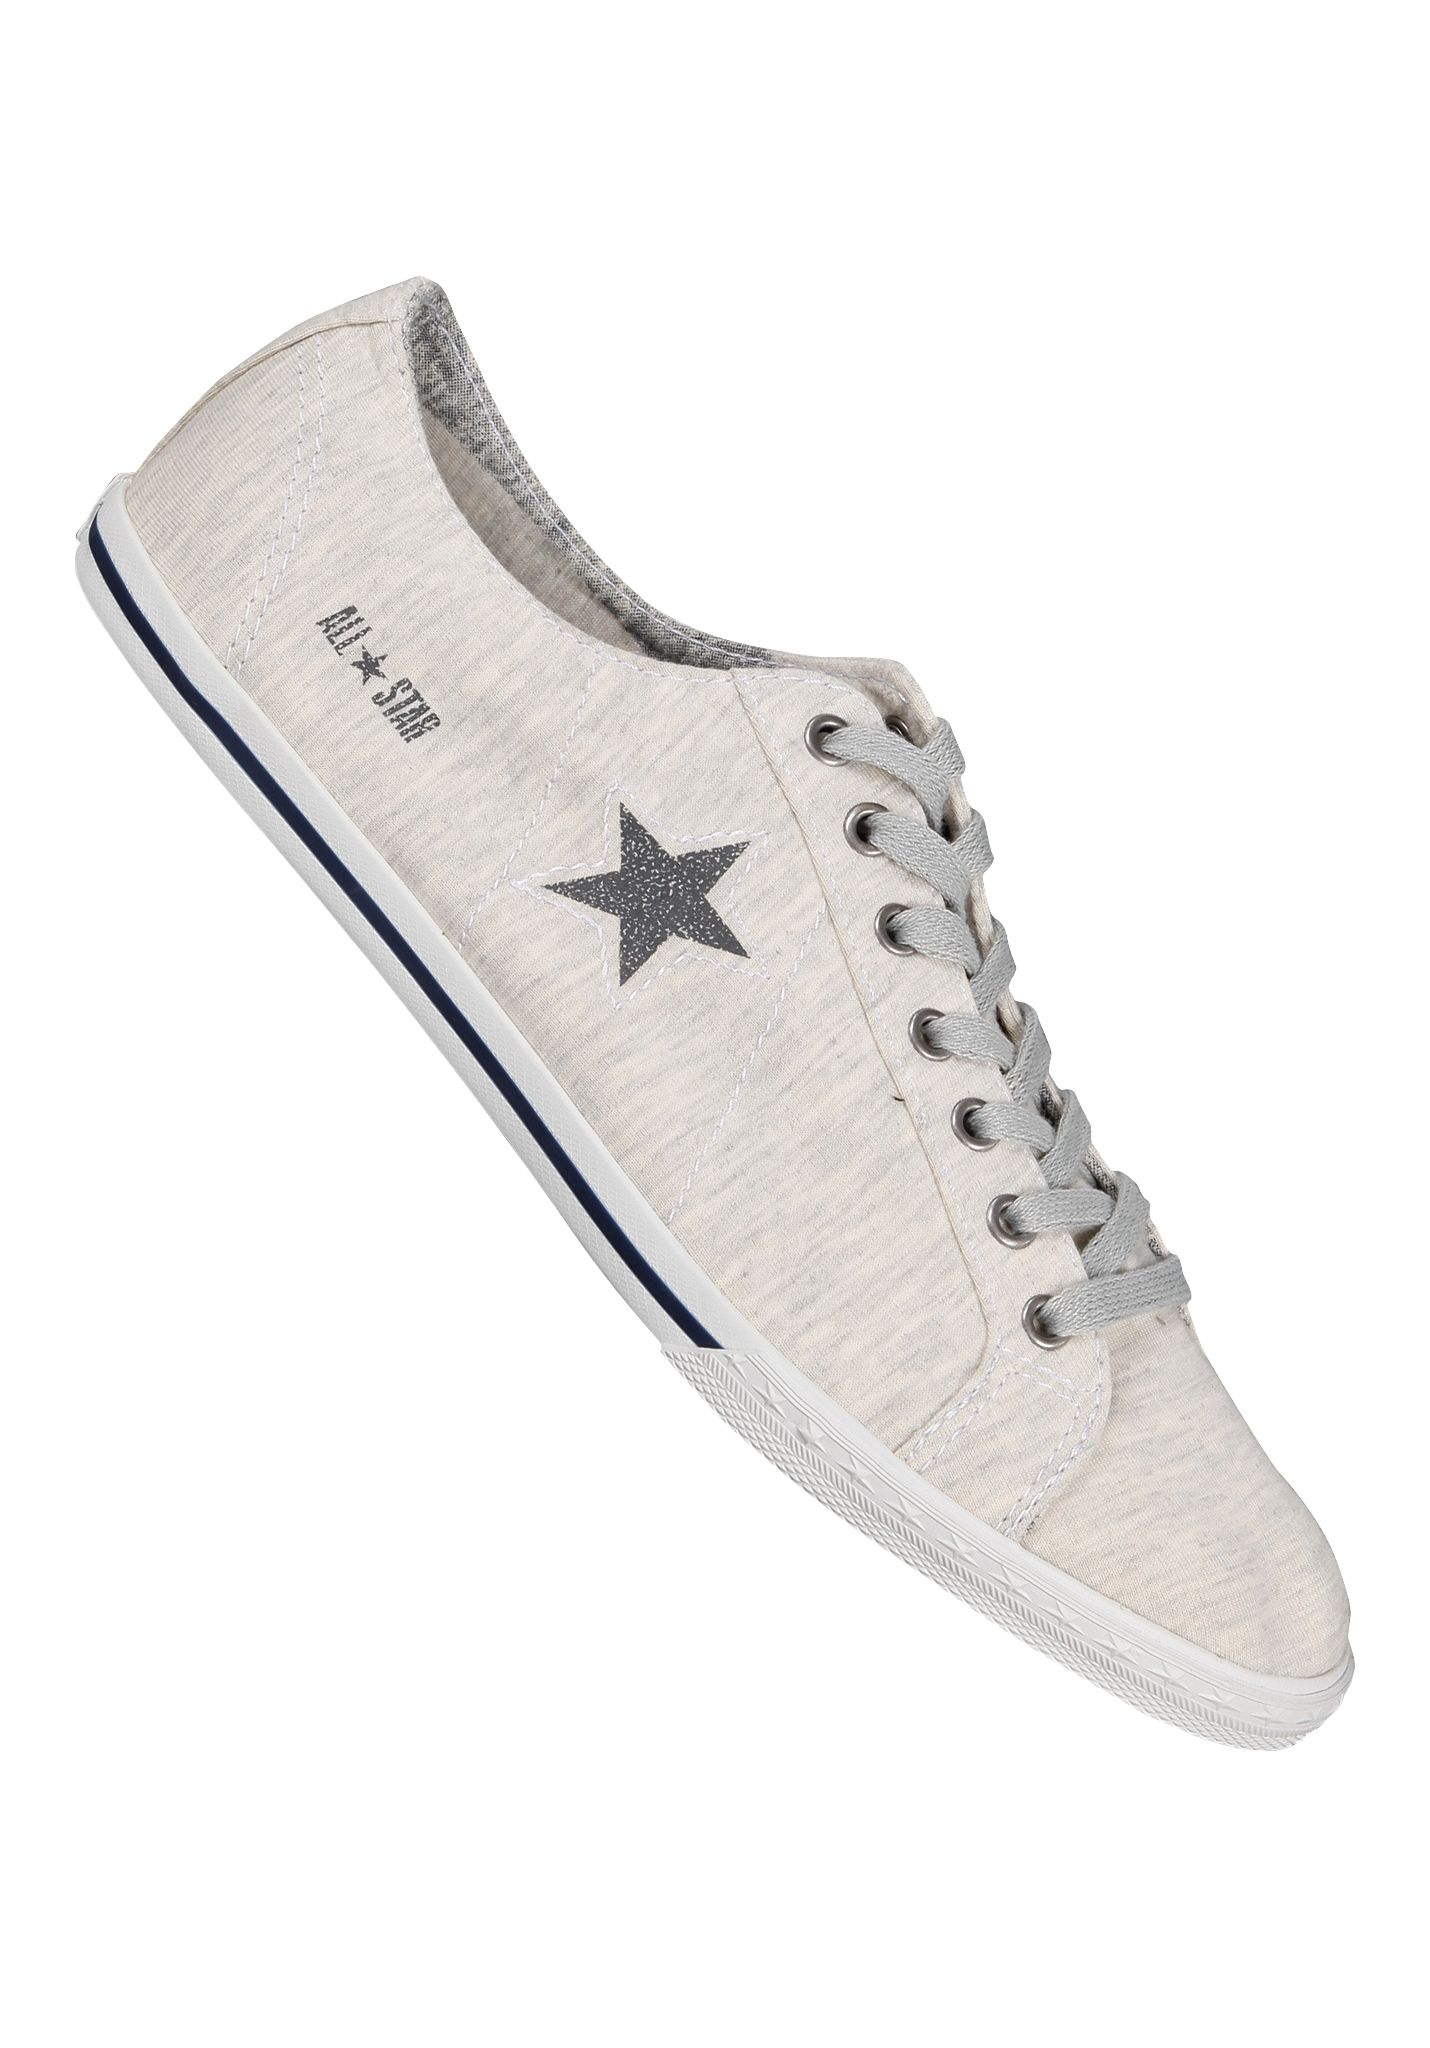 Converse One Star Pro Low OX Tex - Sneakers for Women - Grey - Planet Sports e13091db64fe